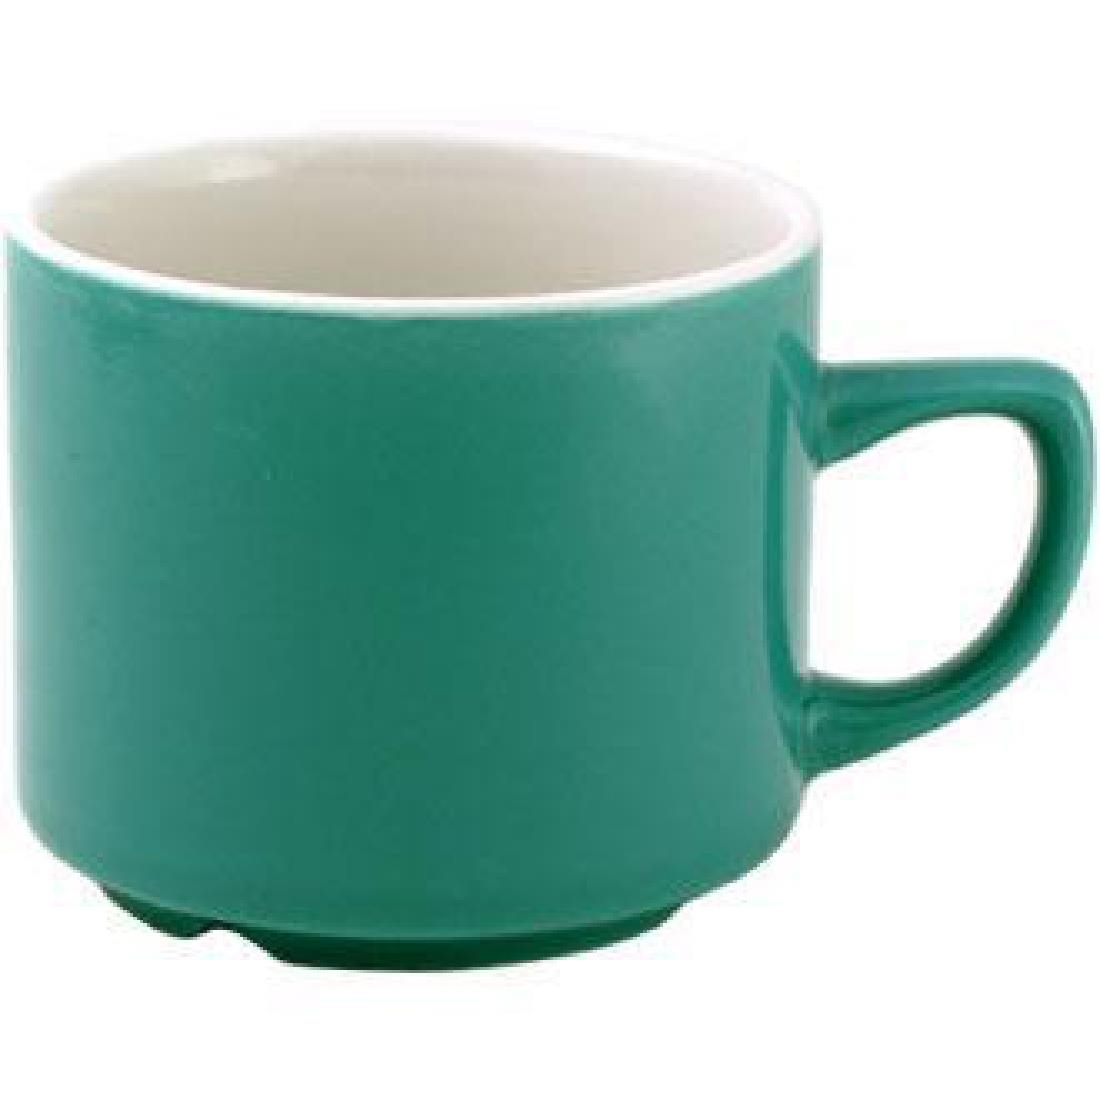 Churchill New Horizons Colour Glaze Maple Tea Cups Green 199ml (Pack of 24) (M820)